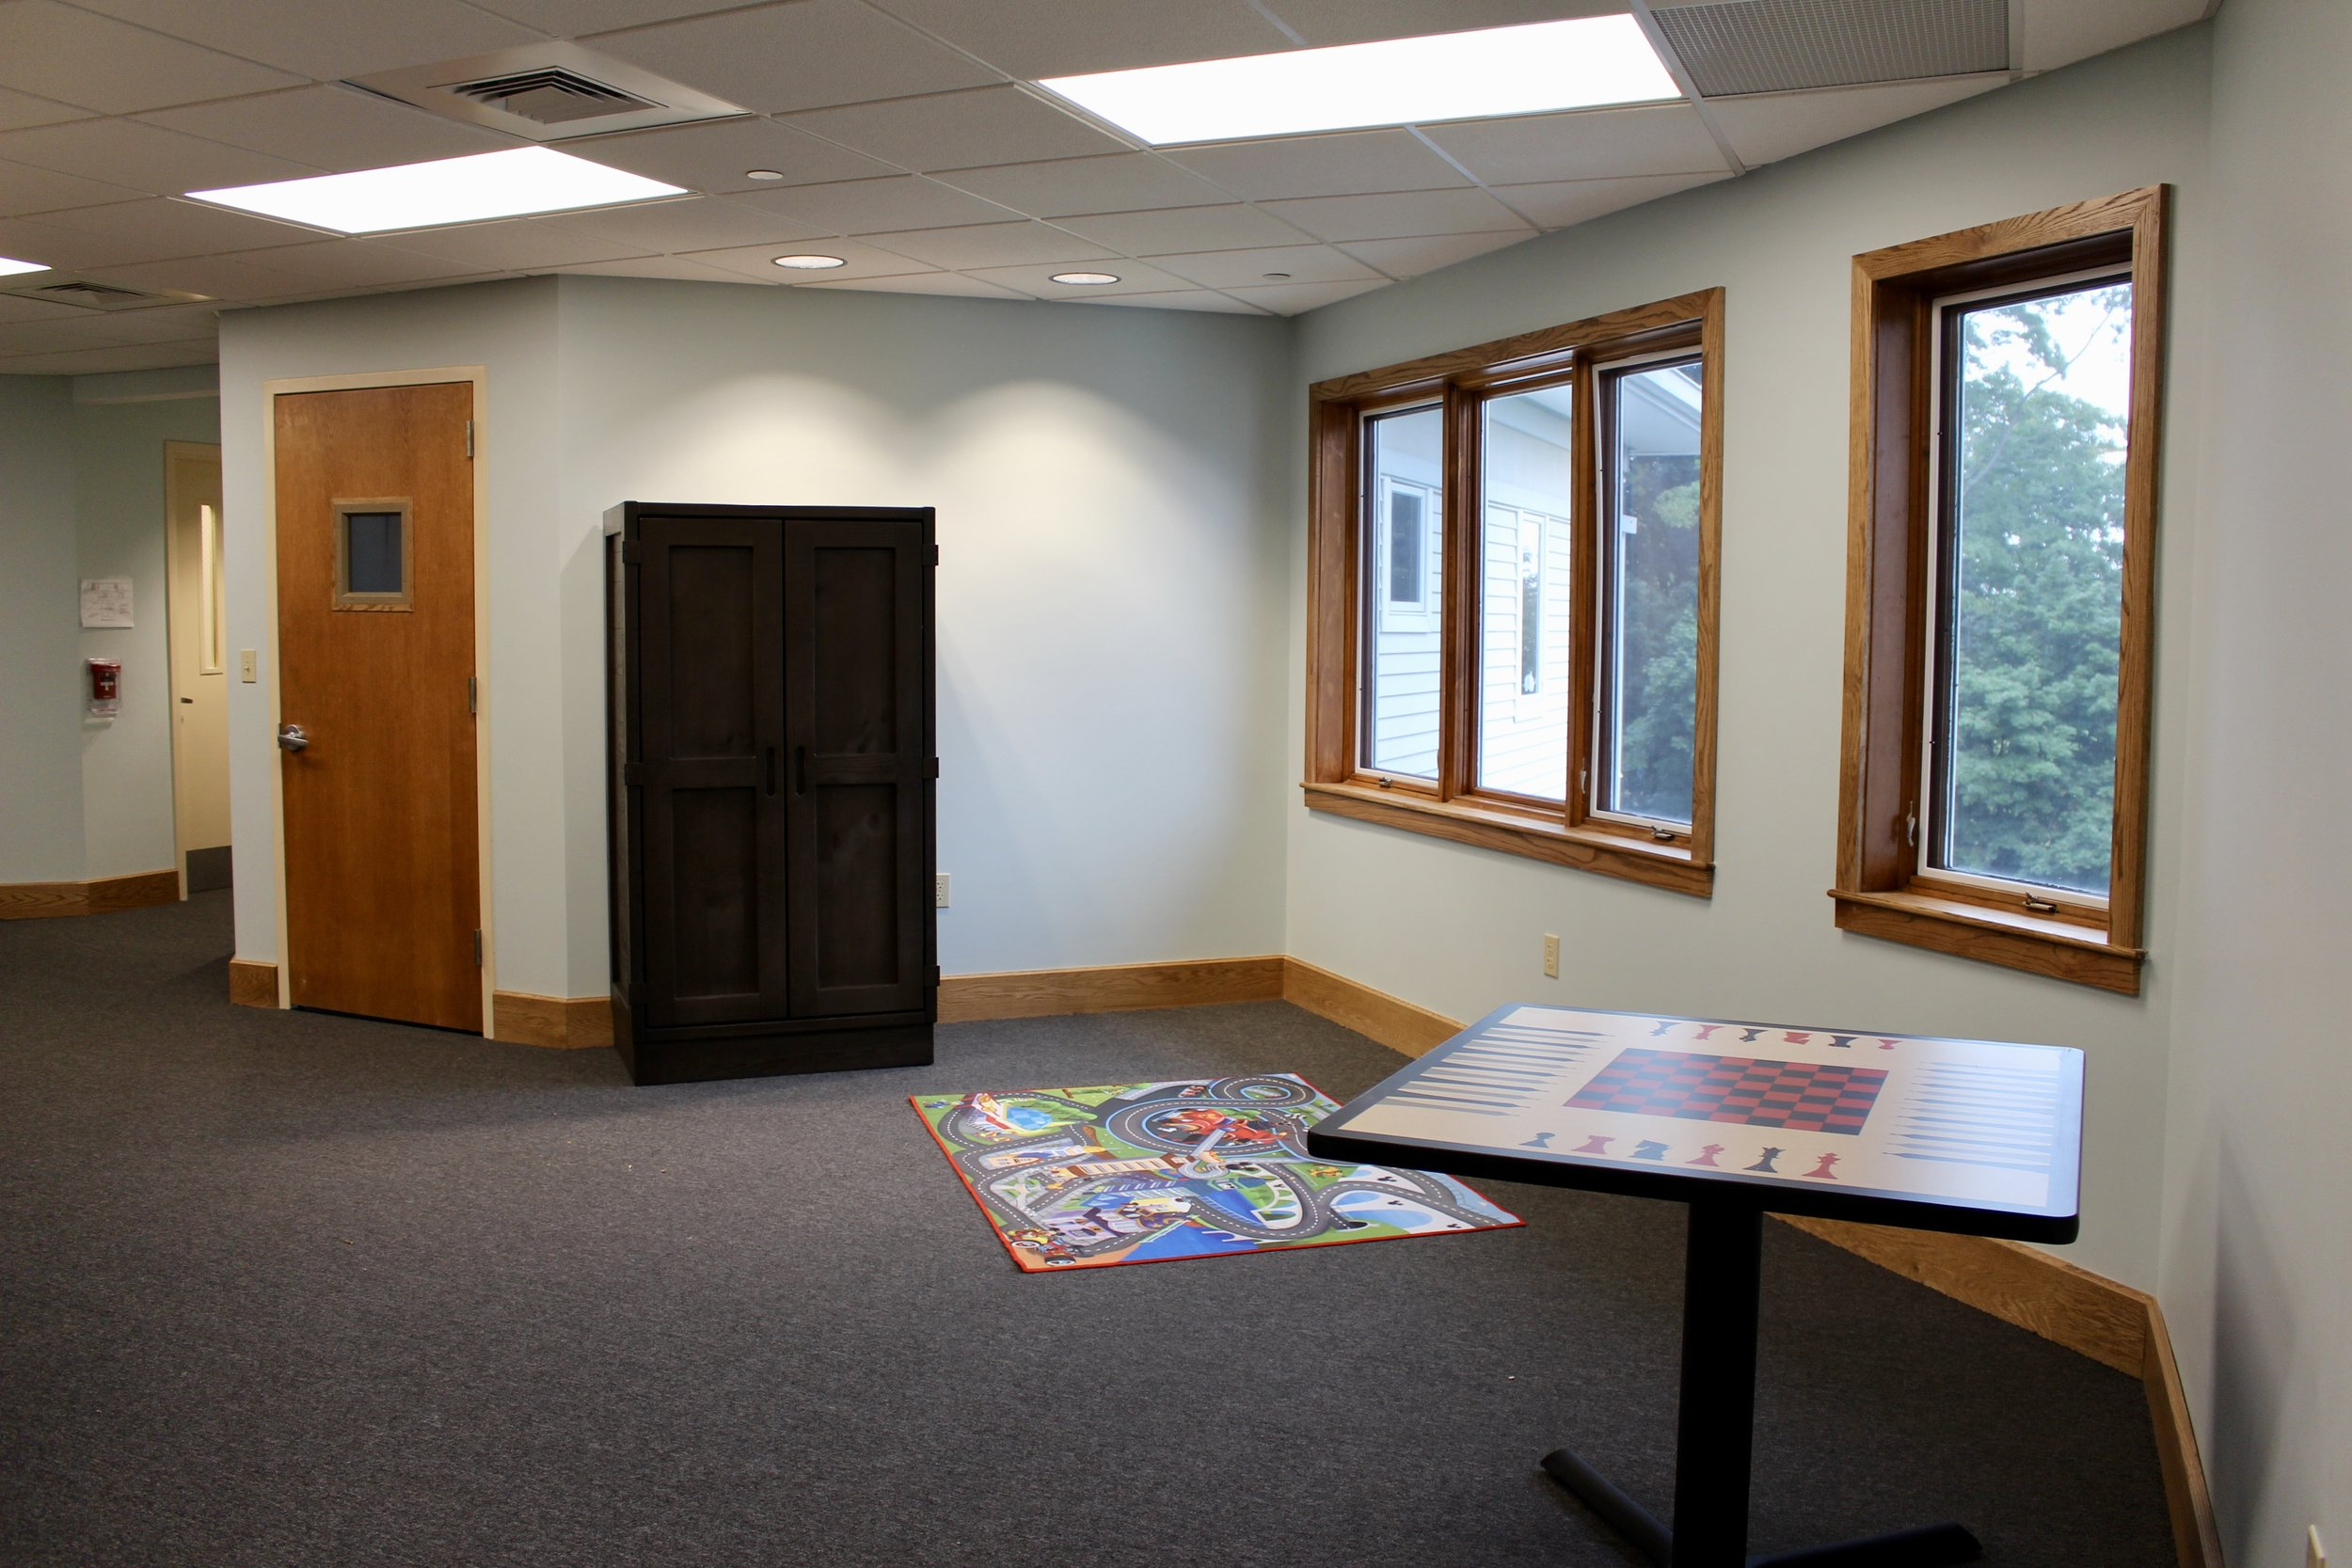 Game center/ Common space (Duet Chairs to come) Behavioral Health and Education Agency - Laminate game table Contract $364